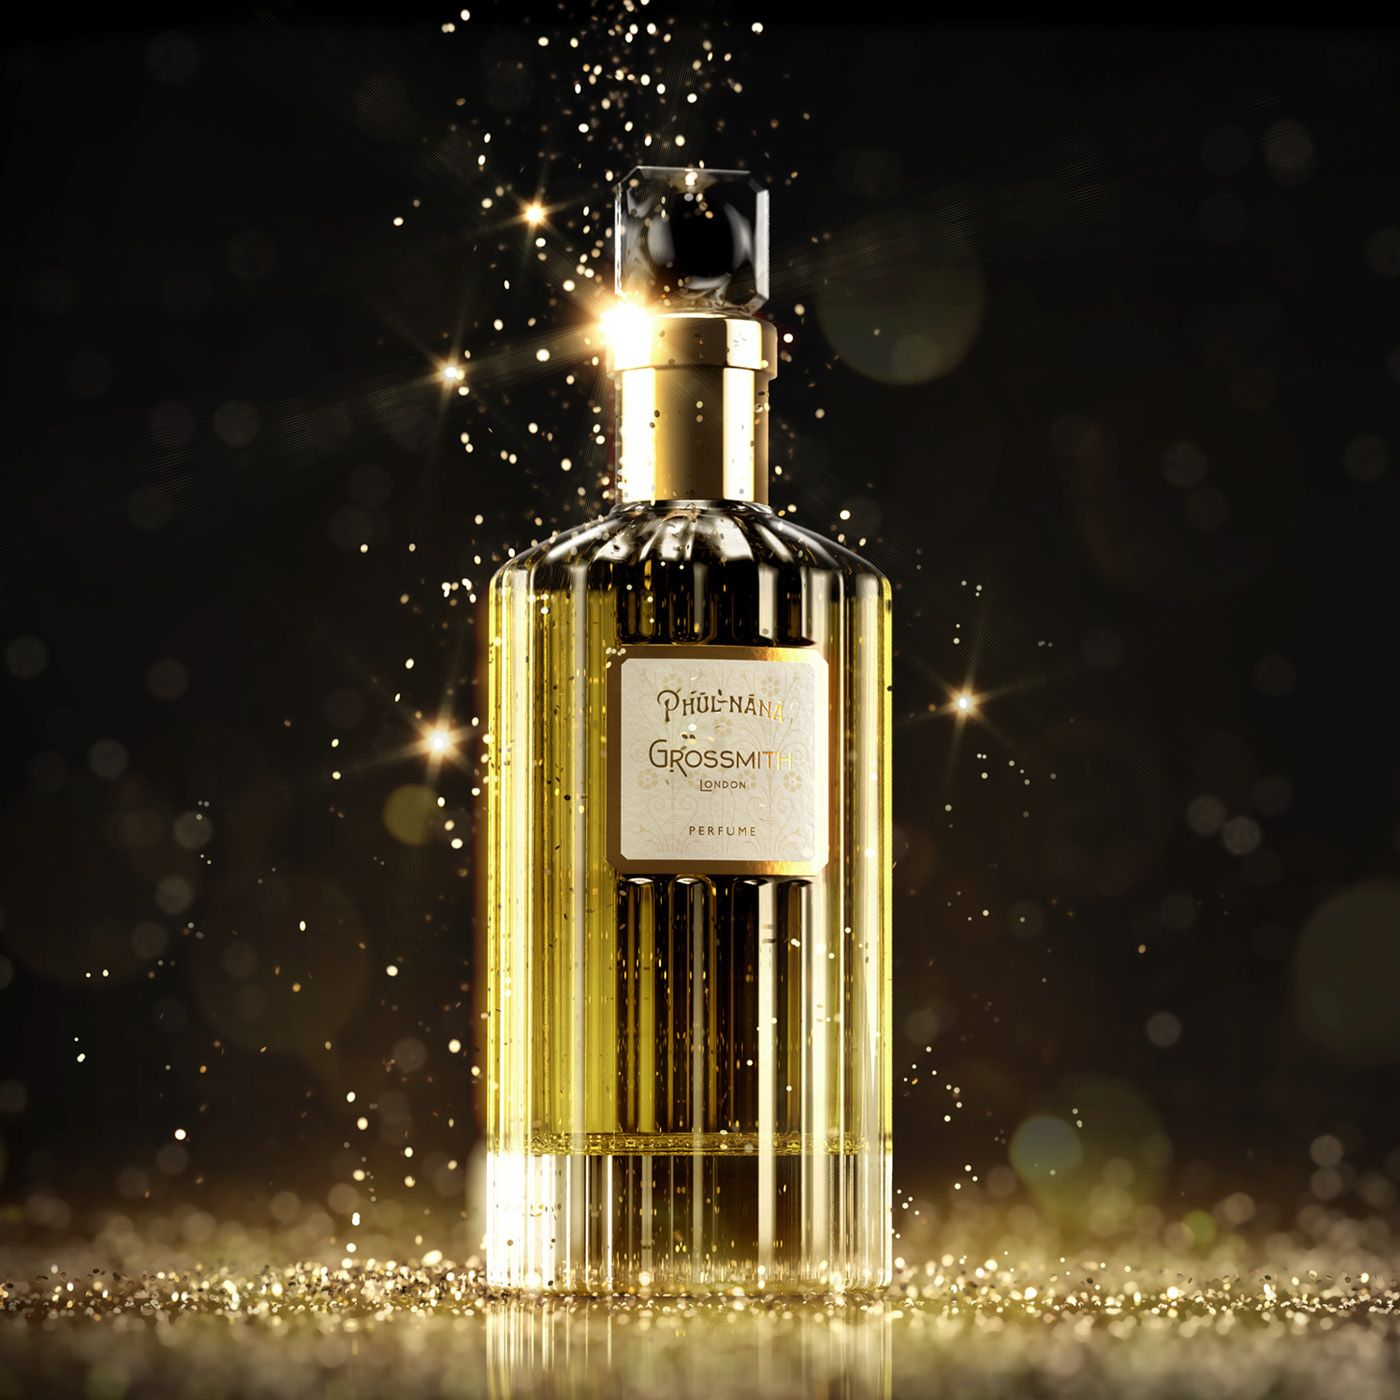 Photo of Grossmith Phul-Nana Perfume